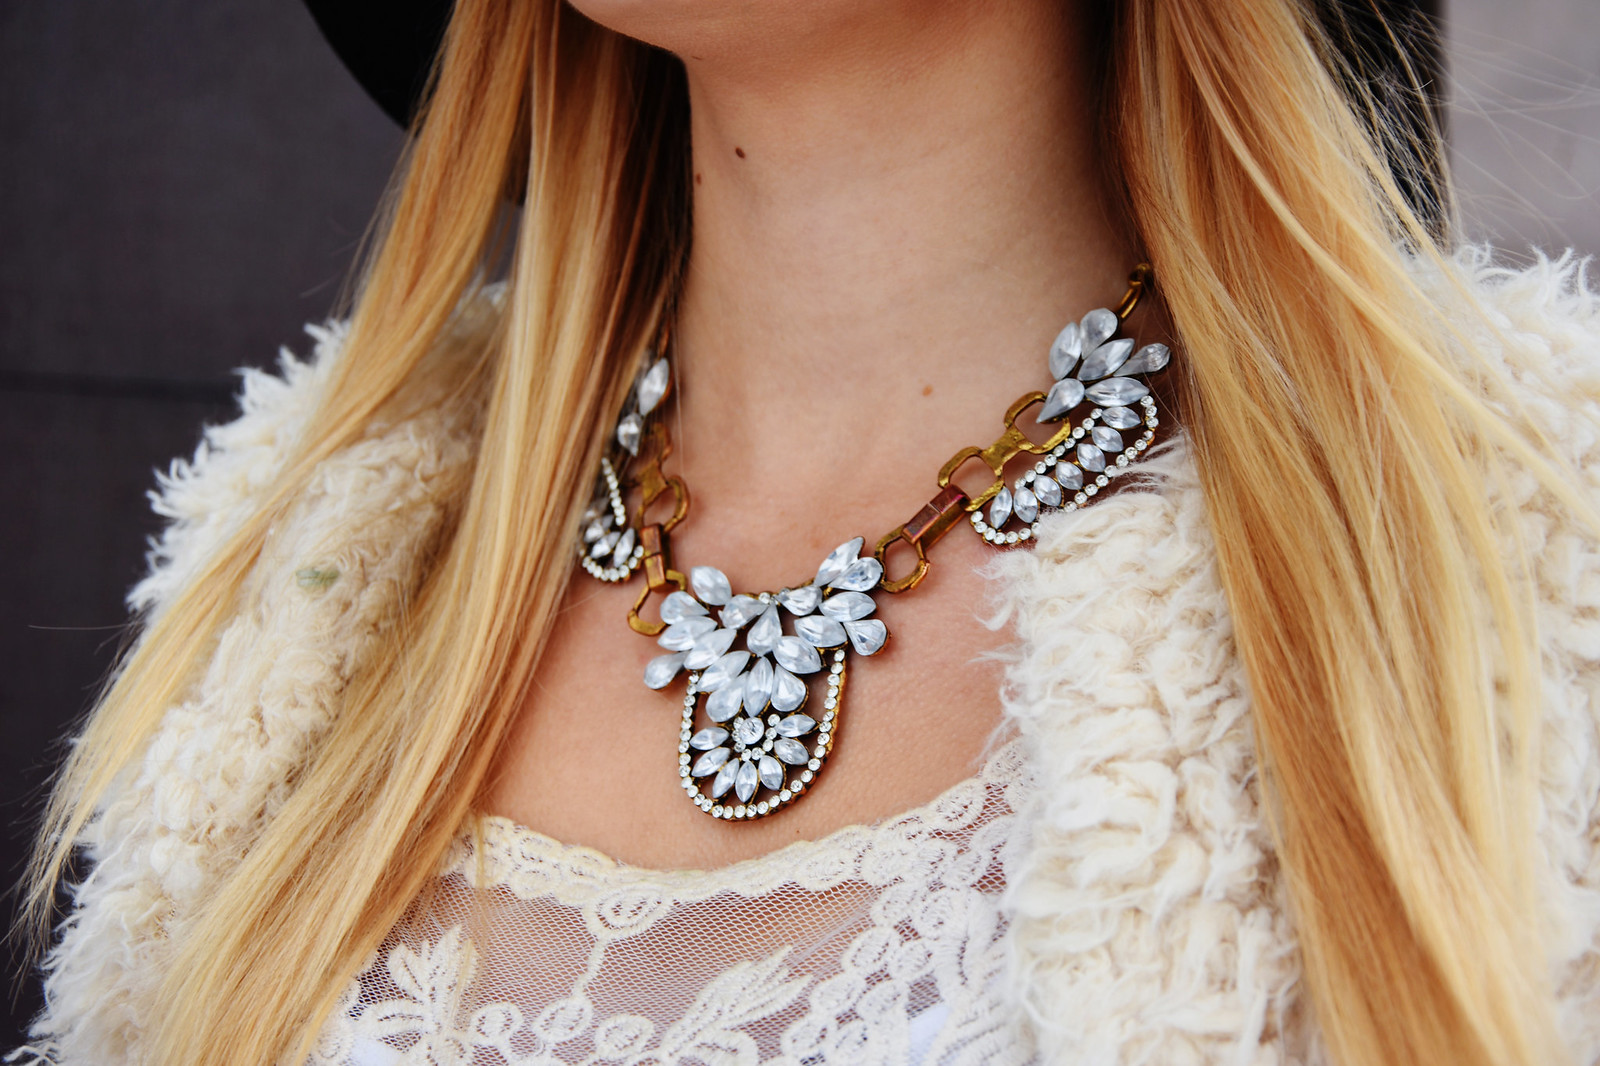 Ebay necklace in outfit